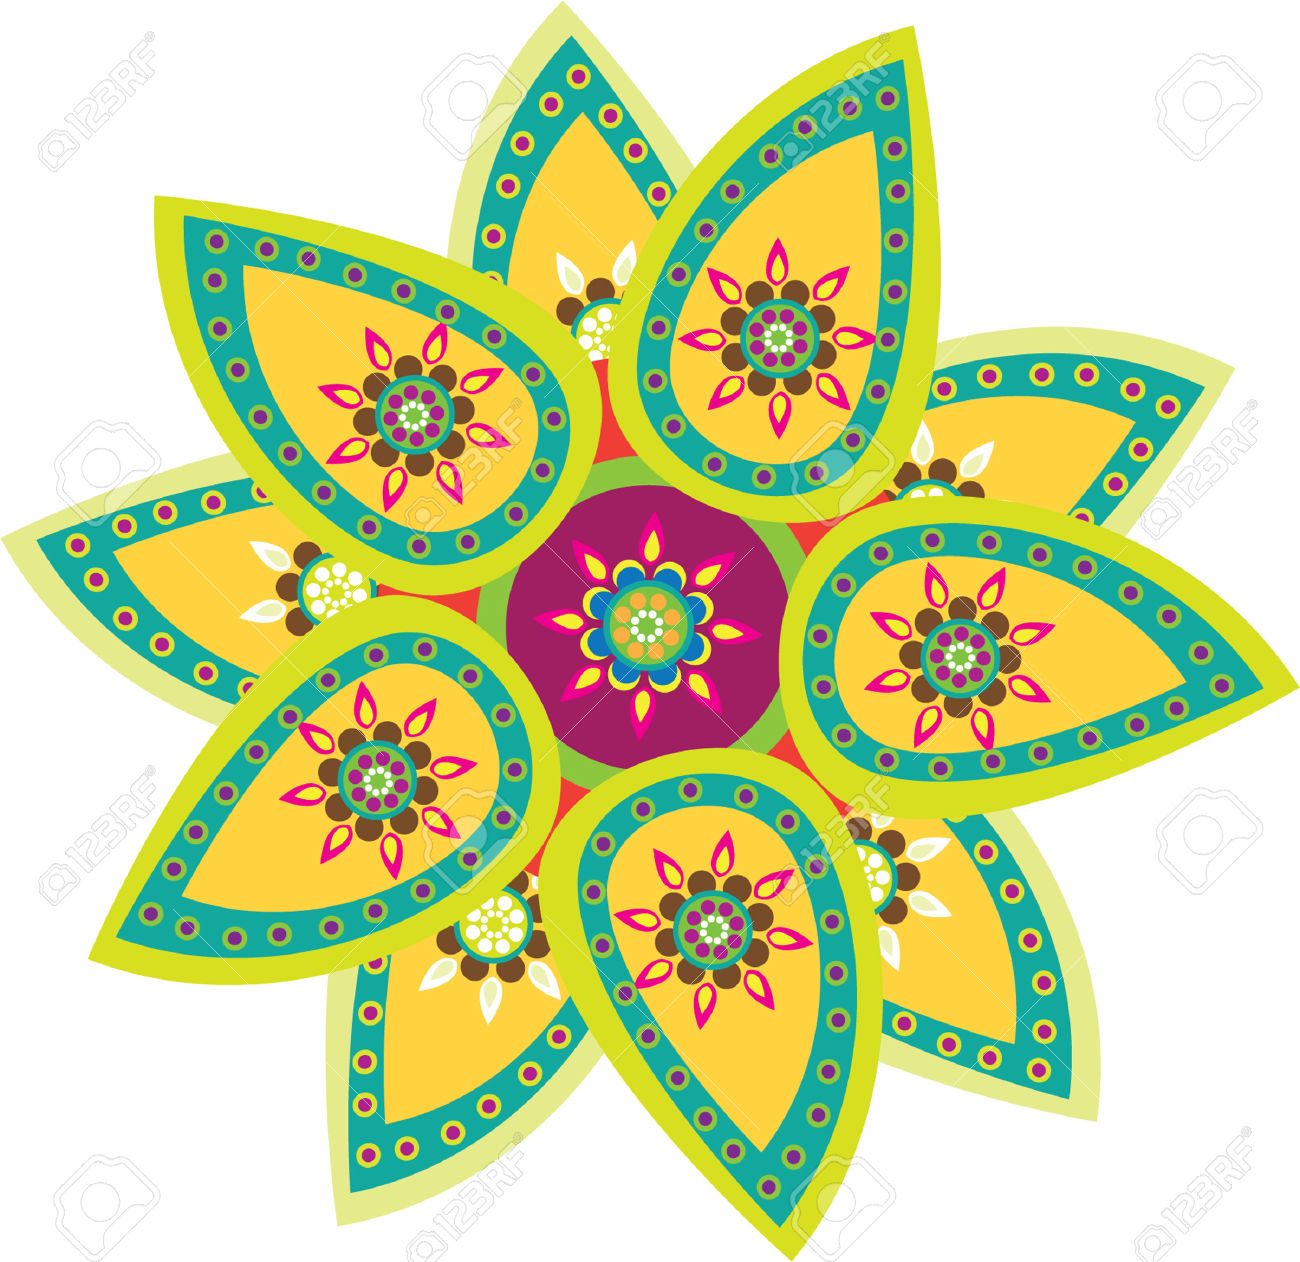 Library of rangoli image black and white stock hd png files.